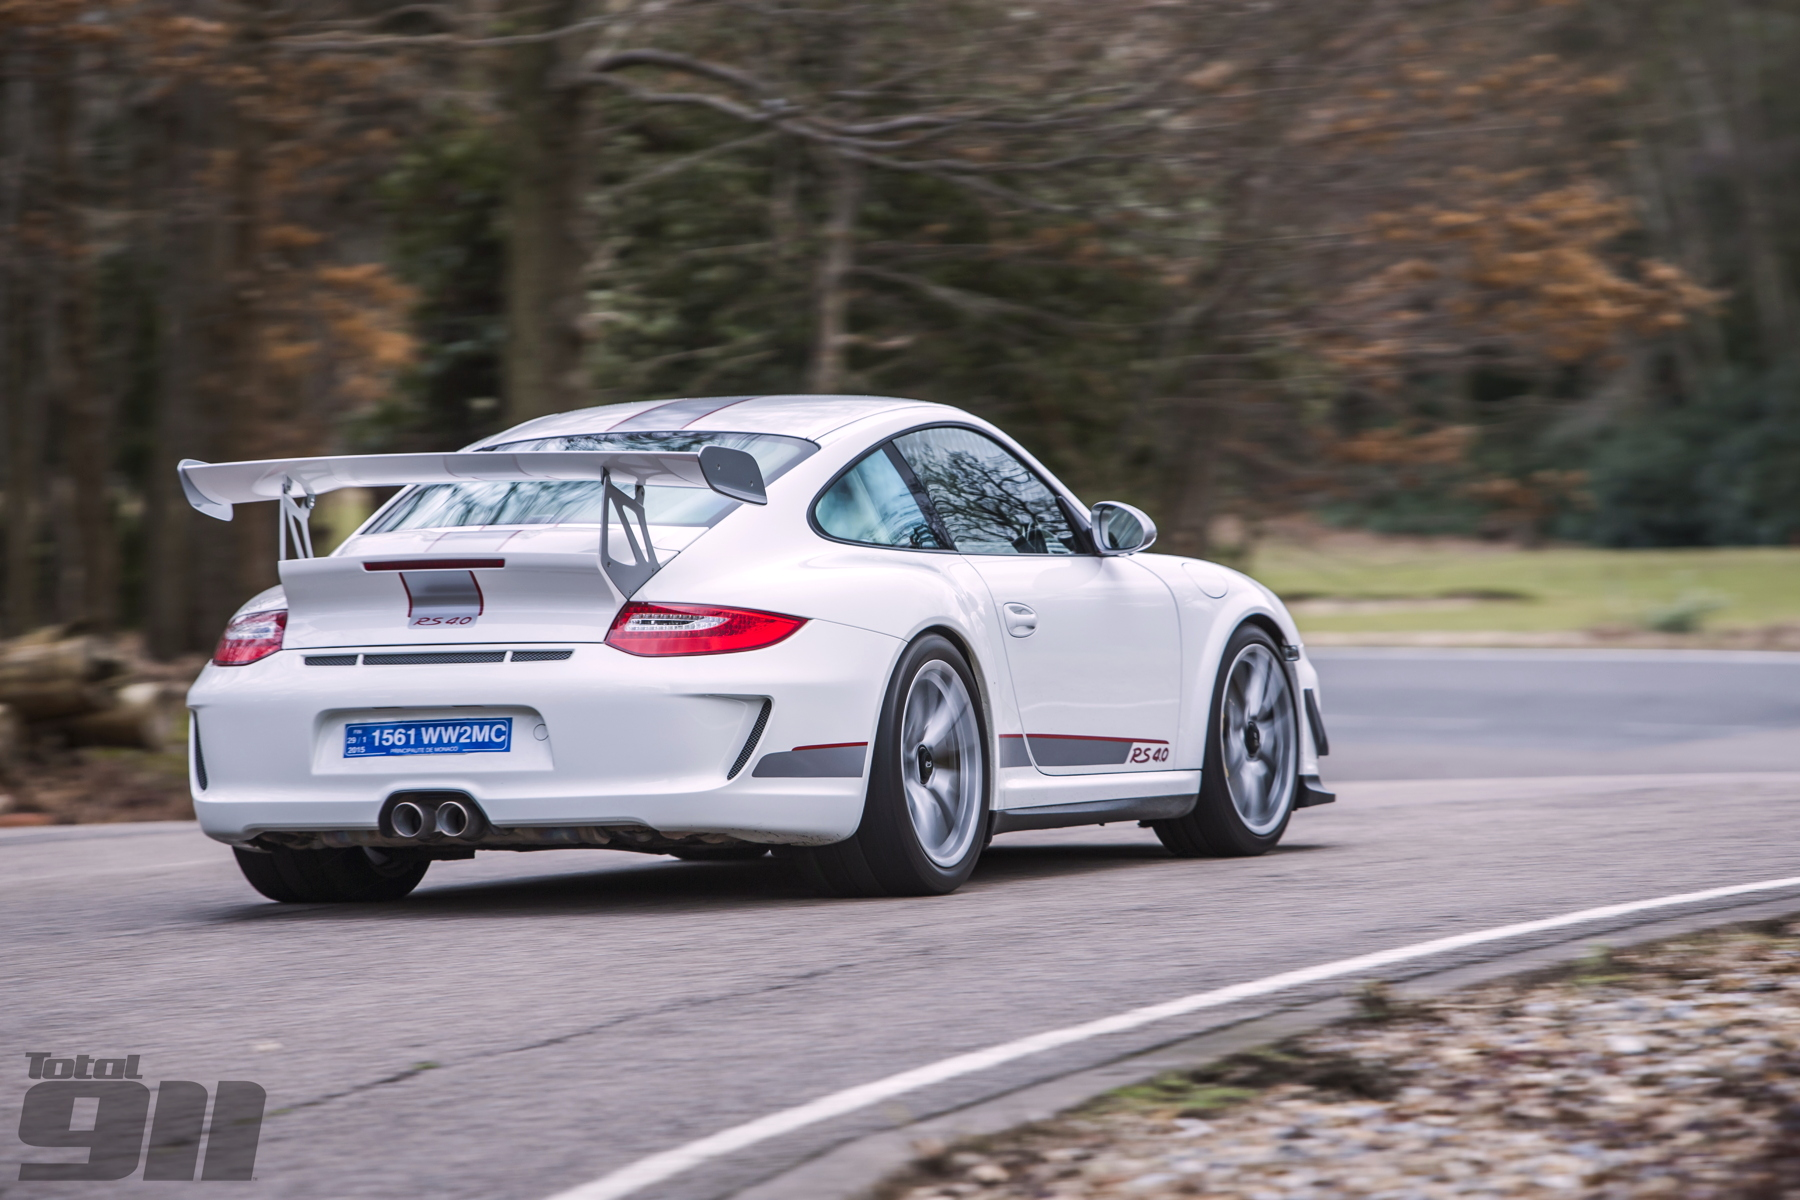 Everyone loves the 997 GT3 RS 4.0. The latest Rennsport needs to generate that same enthusiasm.